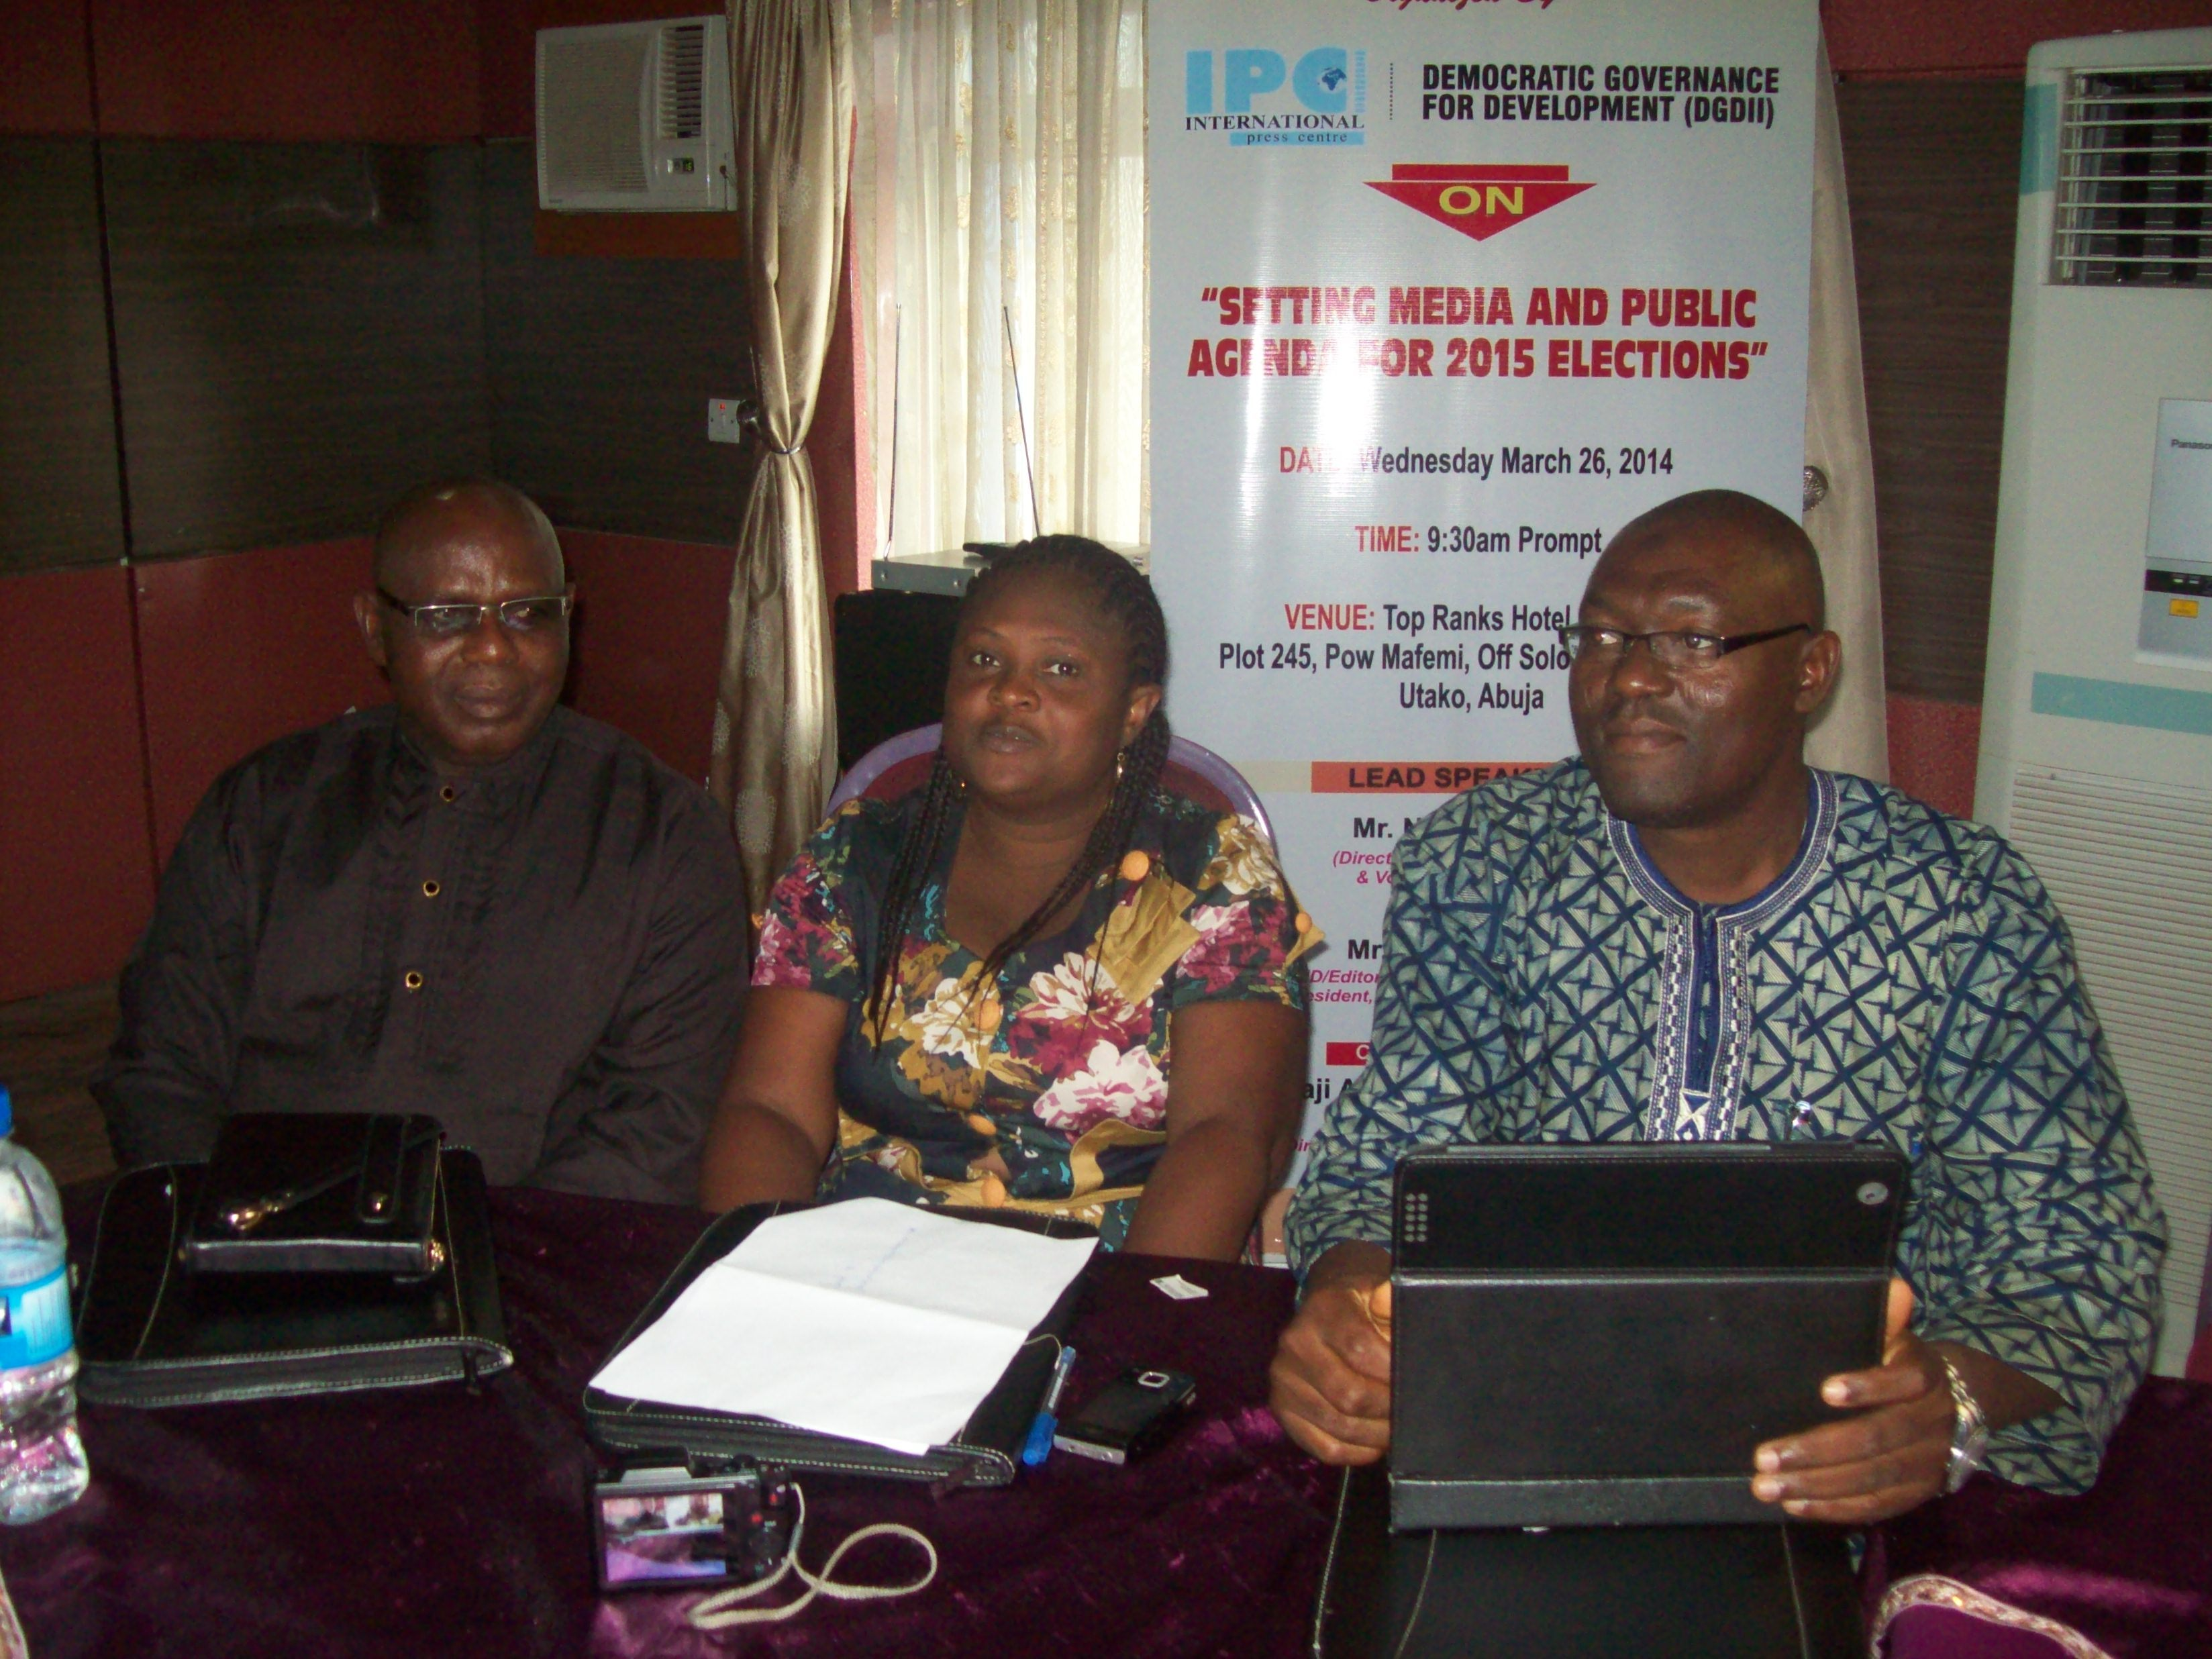 Communiqué of National Stakeholders' Roundtable on Setting Media and Public Agenda for 2015